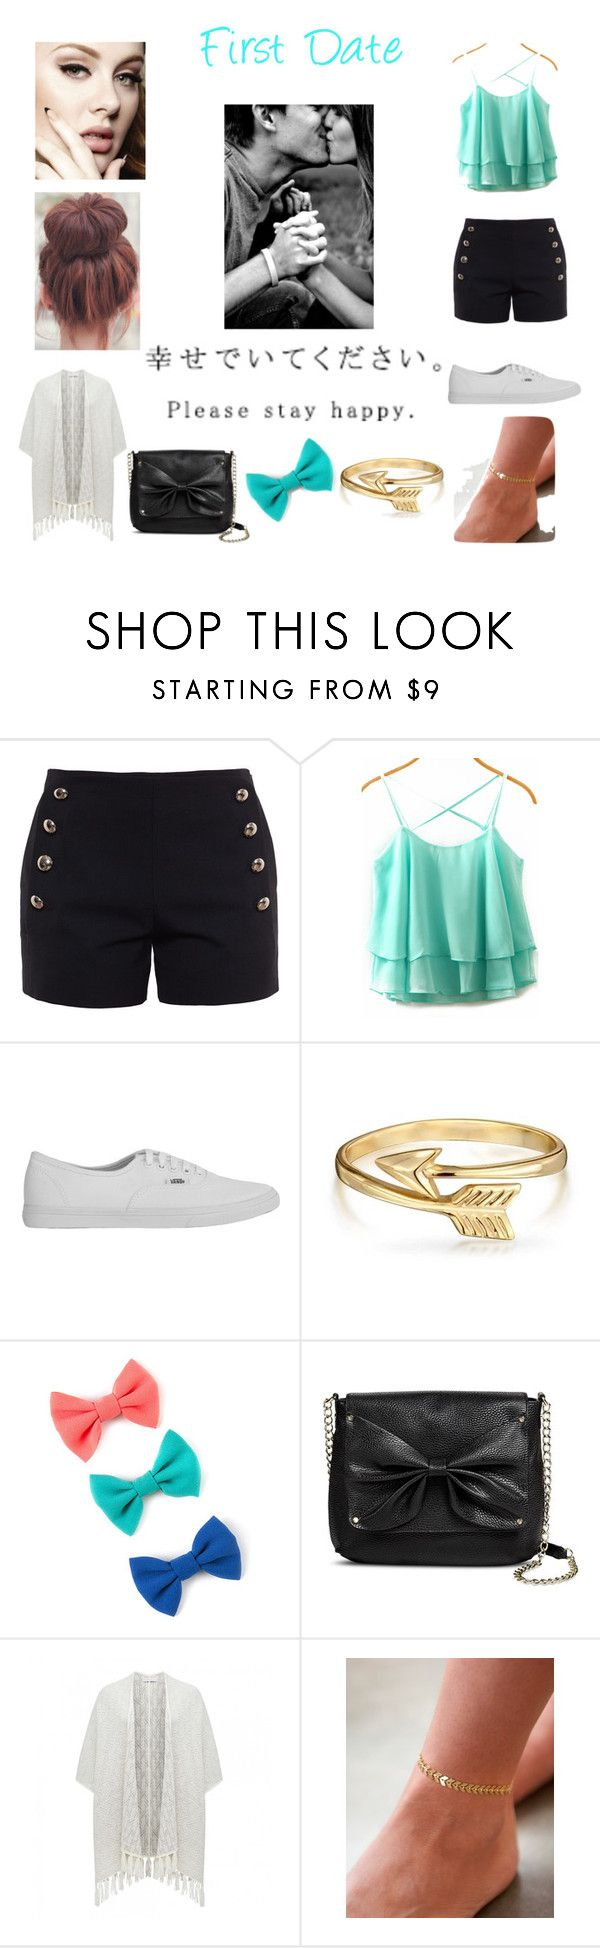 """""""First Date Outfit"""" by littledirectionor00 ❤ liked on Polyvore featuring Chloé, Vans, Bling Jewelry, Sam & Libby and Forever New"""